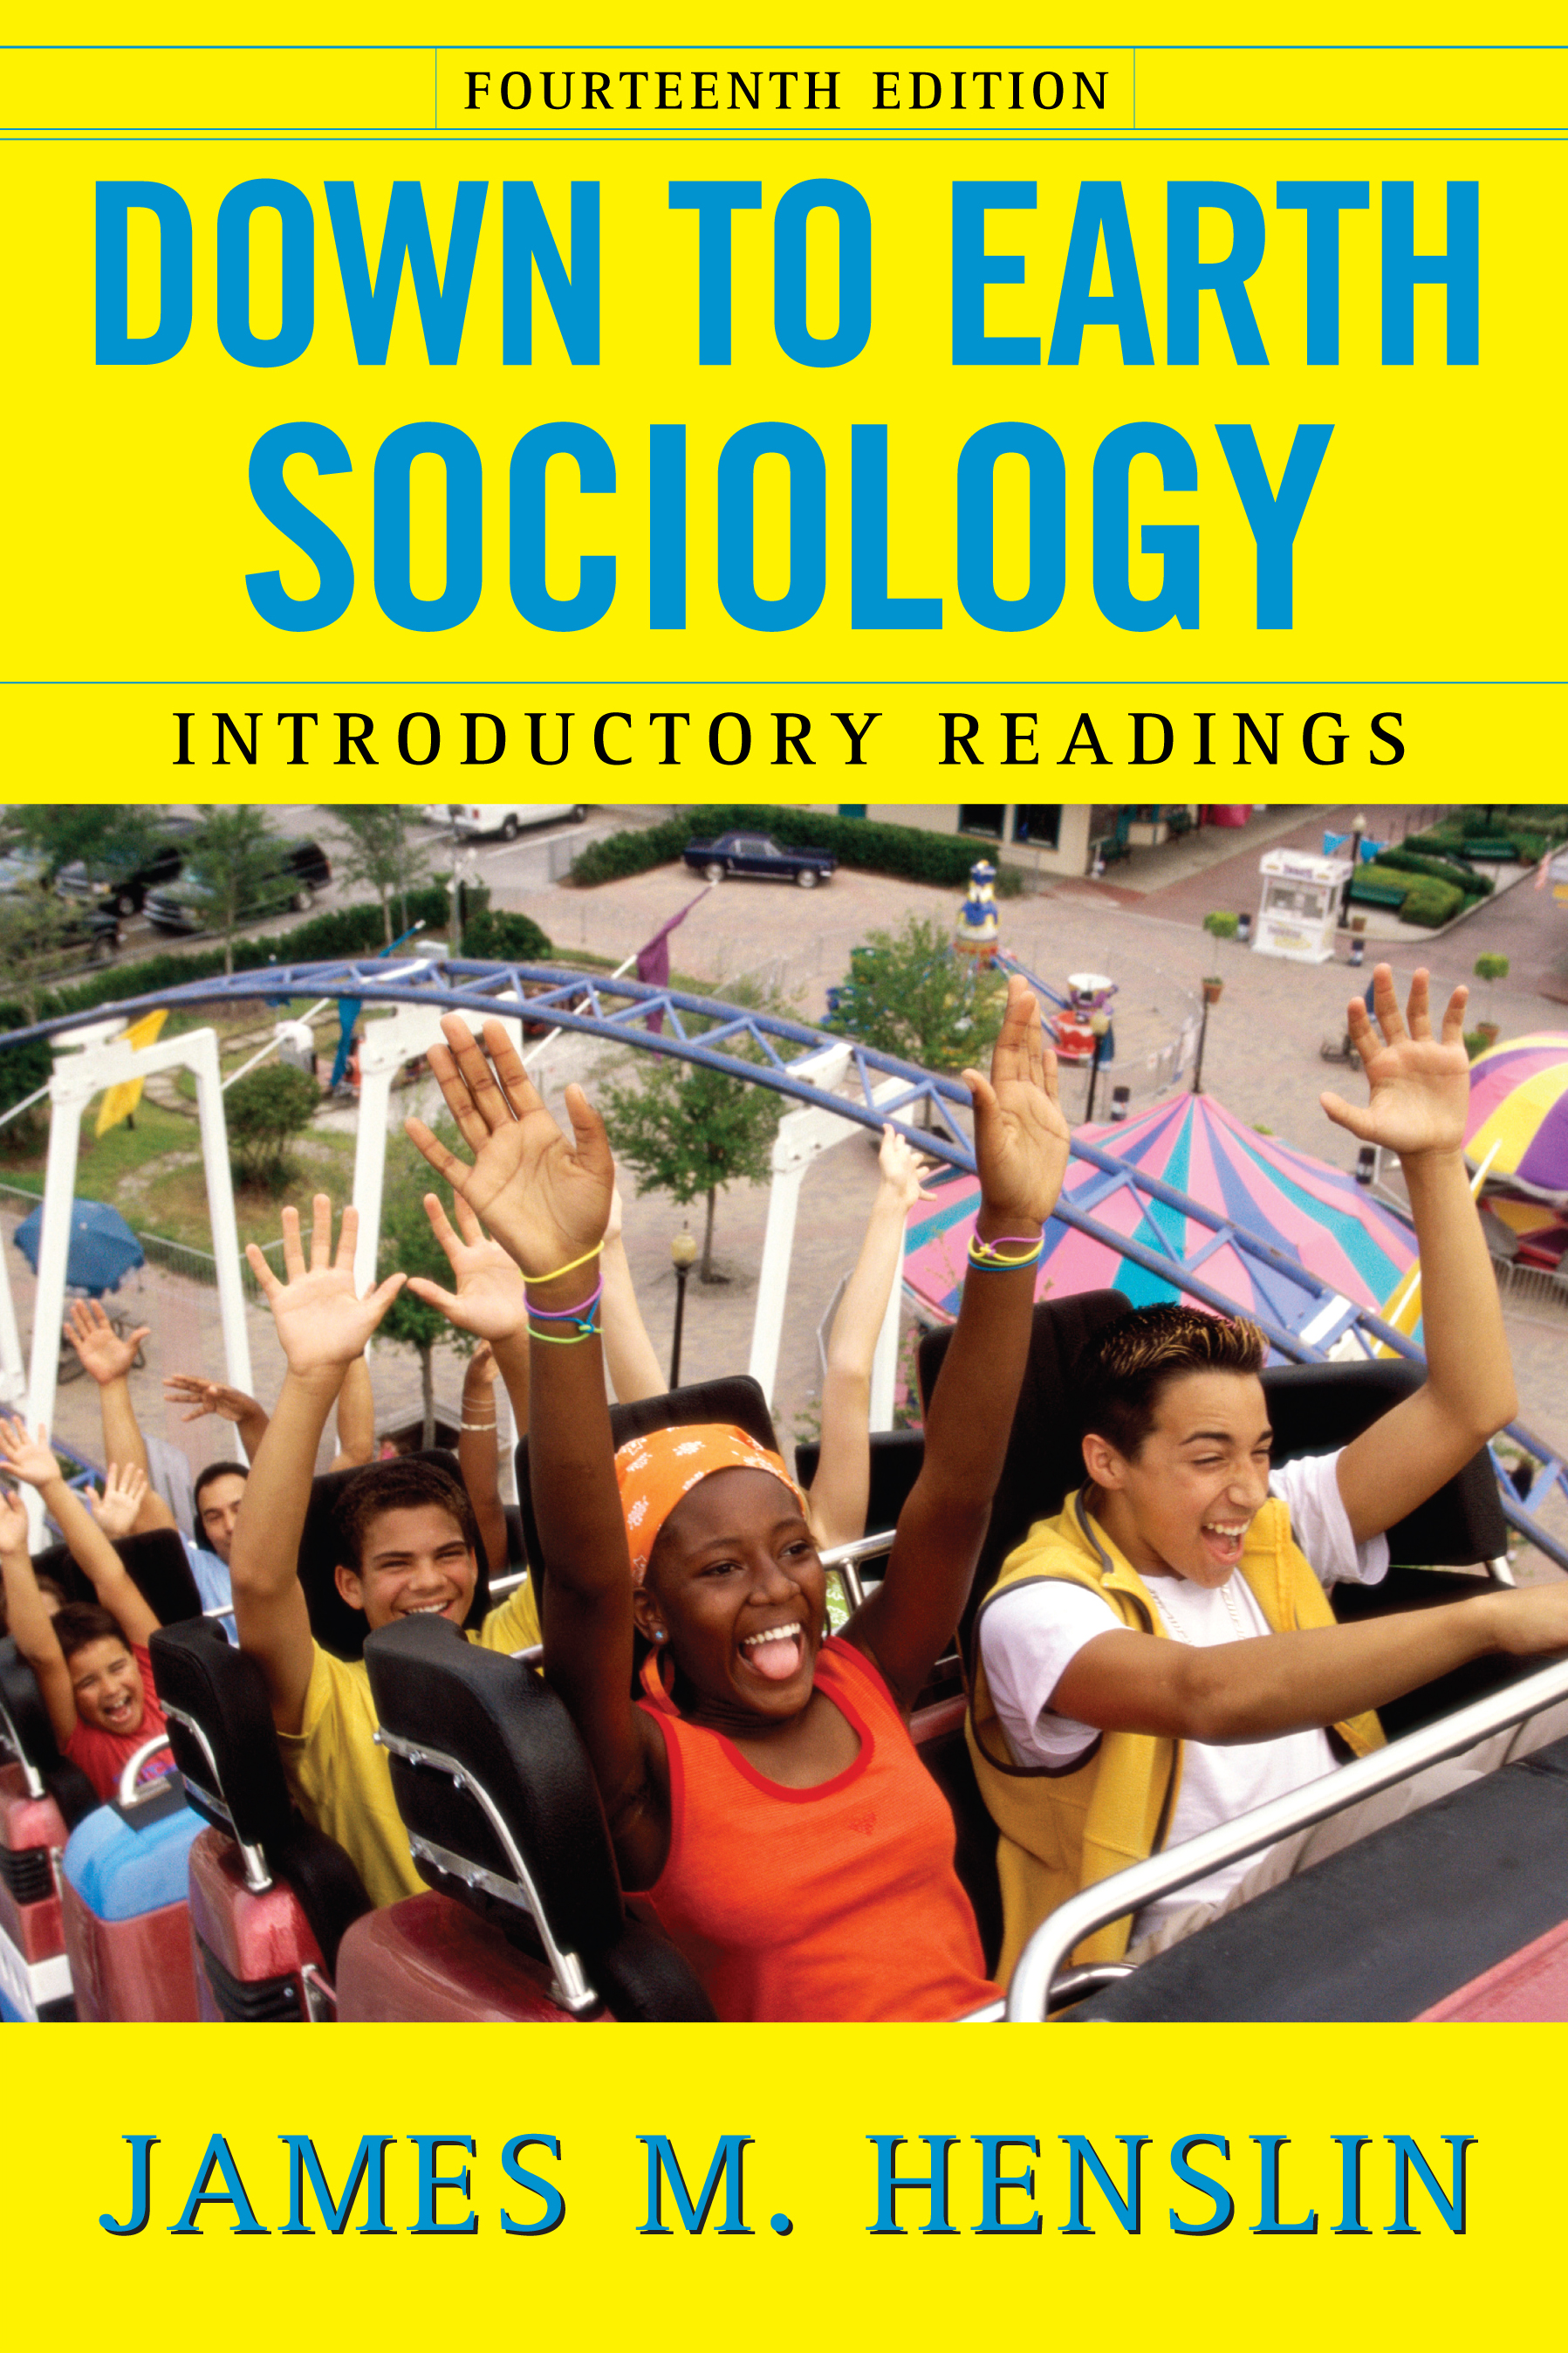 the principles of sociology a down to earth approach Be the first to review test bank for sociology: a down-to-earth approach, 11th edition: james m henslin cancel reply you must be logged in to post a comment.